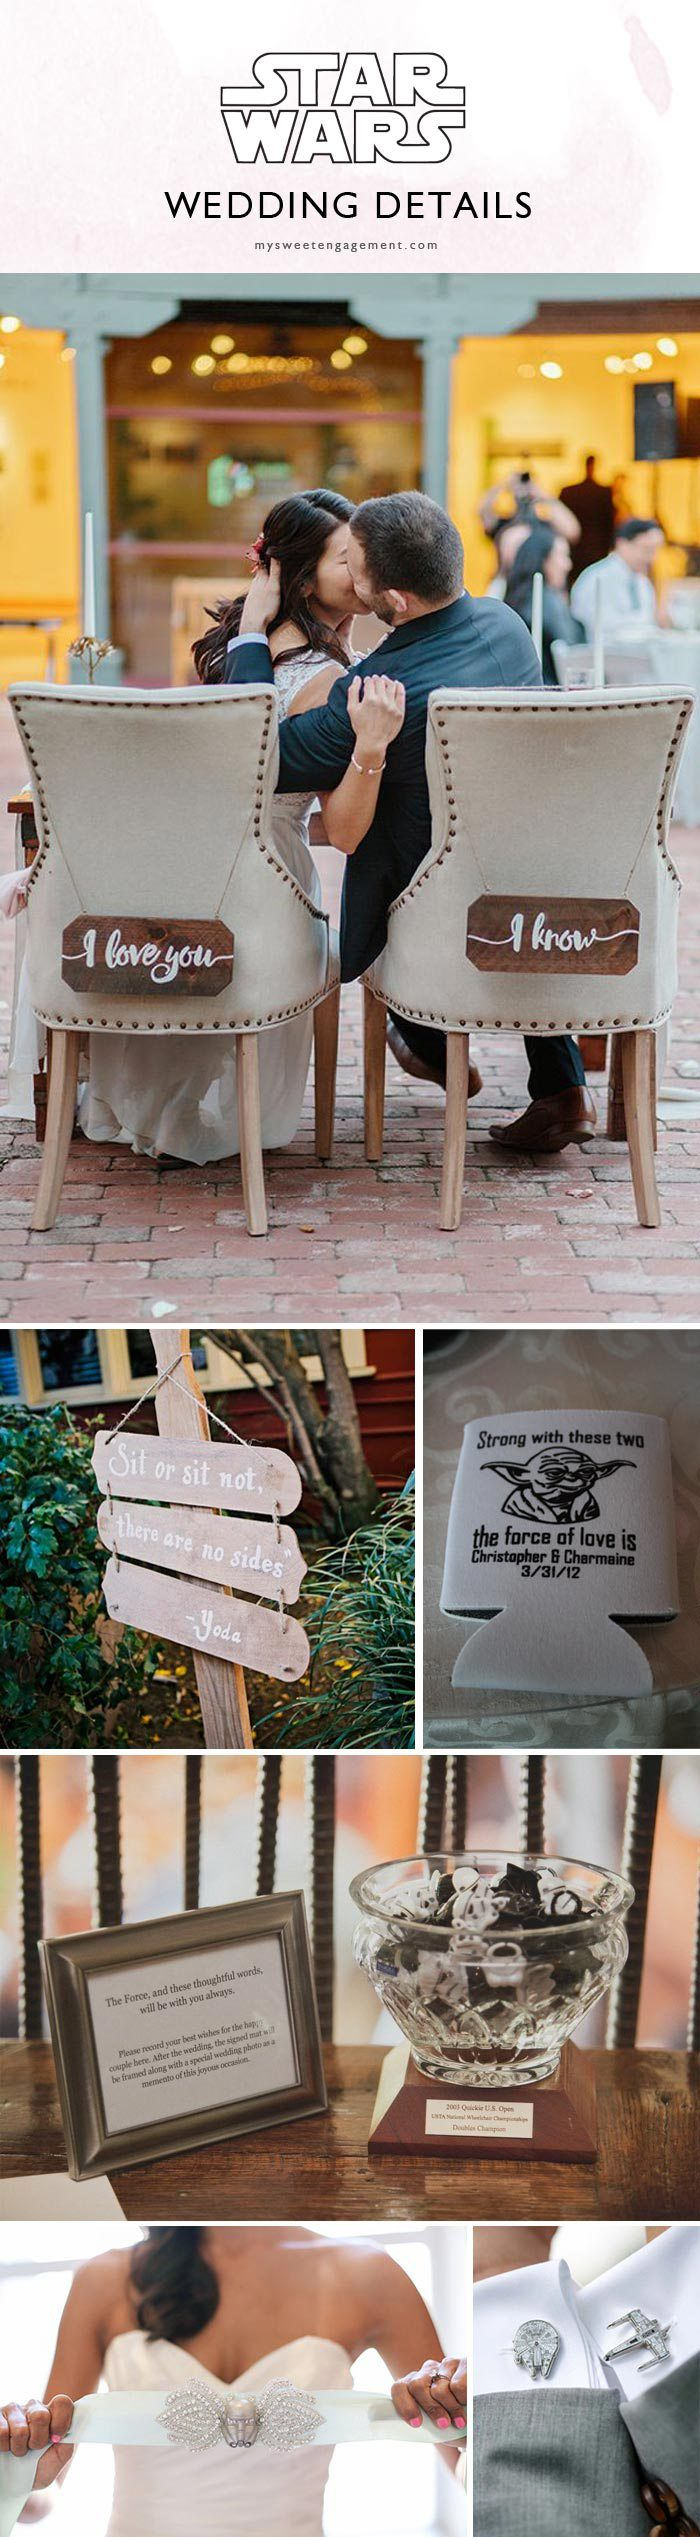 "You're gonna love this Ultimate Guide for an Epic and Elegant #StarWars #Wedding. ""I Love you. I know."" Bride and Groom chair signs, other chair sign couple ideas: Princess + Jedi, Leia + Han. :) Wedding seating sign by Master Yoda. Star Wars wedding favors, guest book, bride and groom accessory details."